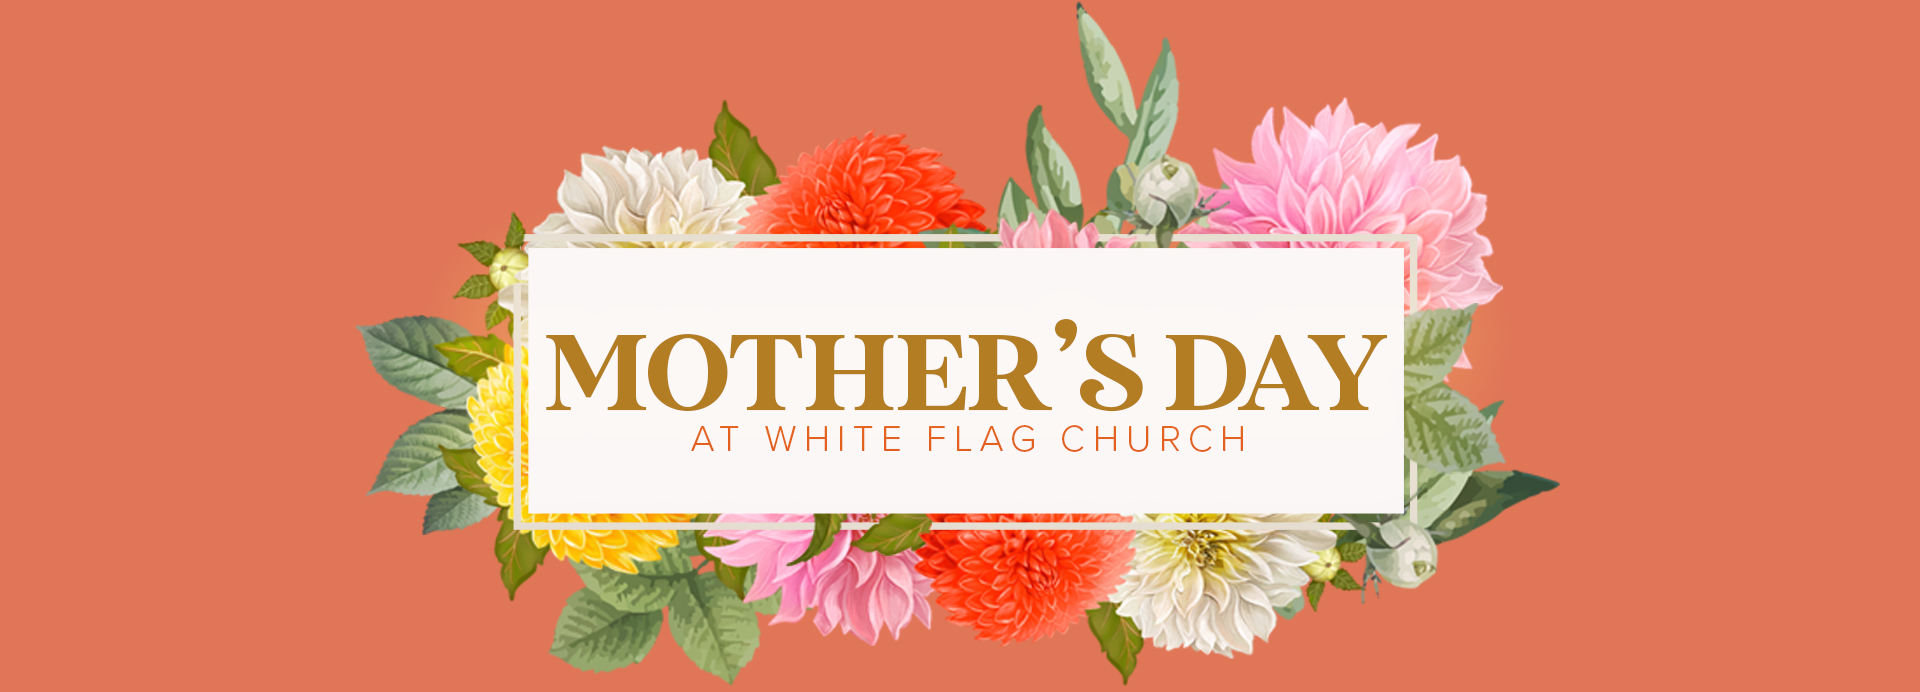 mothers day 2021 app banner